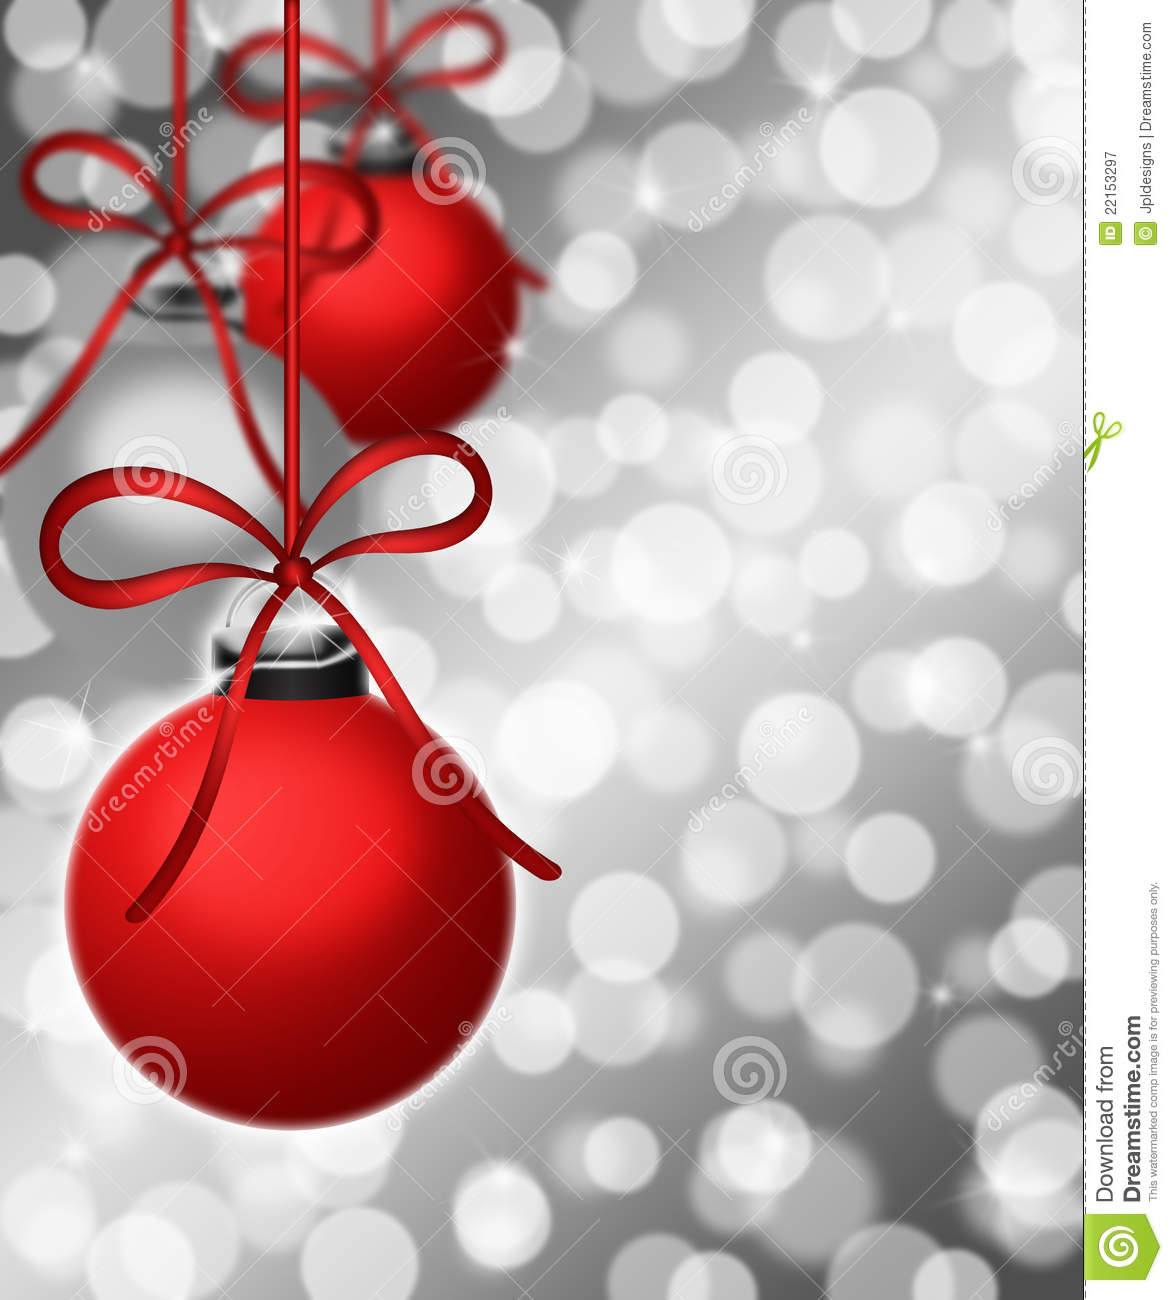 Hanging ornaments on blurred silver background royalty free stock photography image 22153297 - Hanging christmas ornaments ...